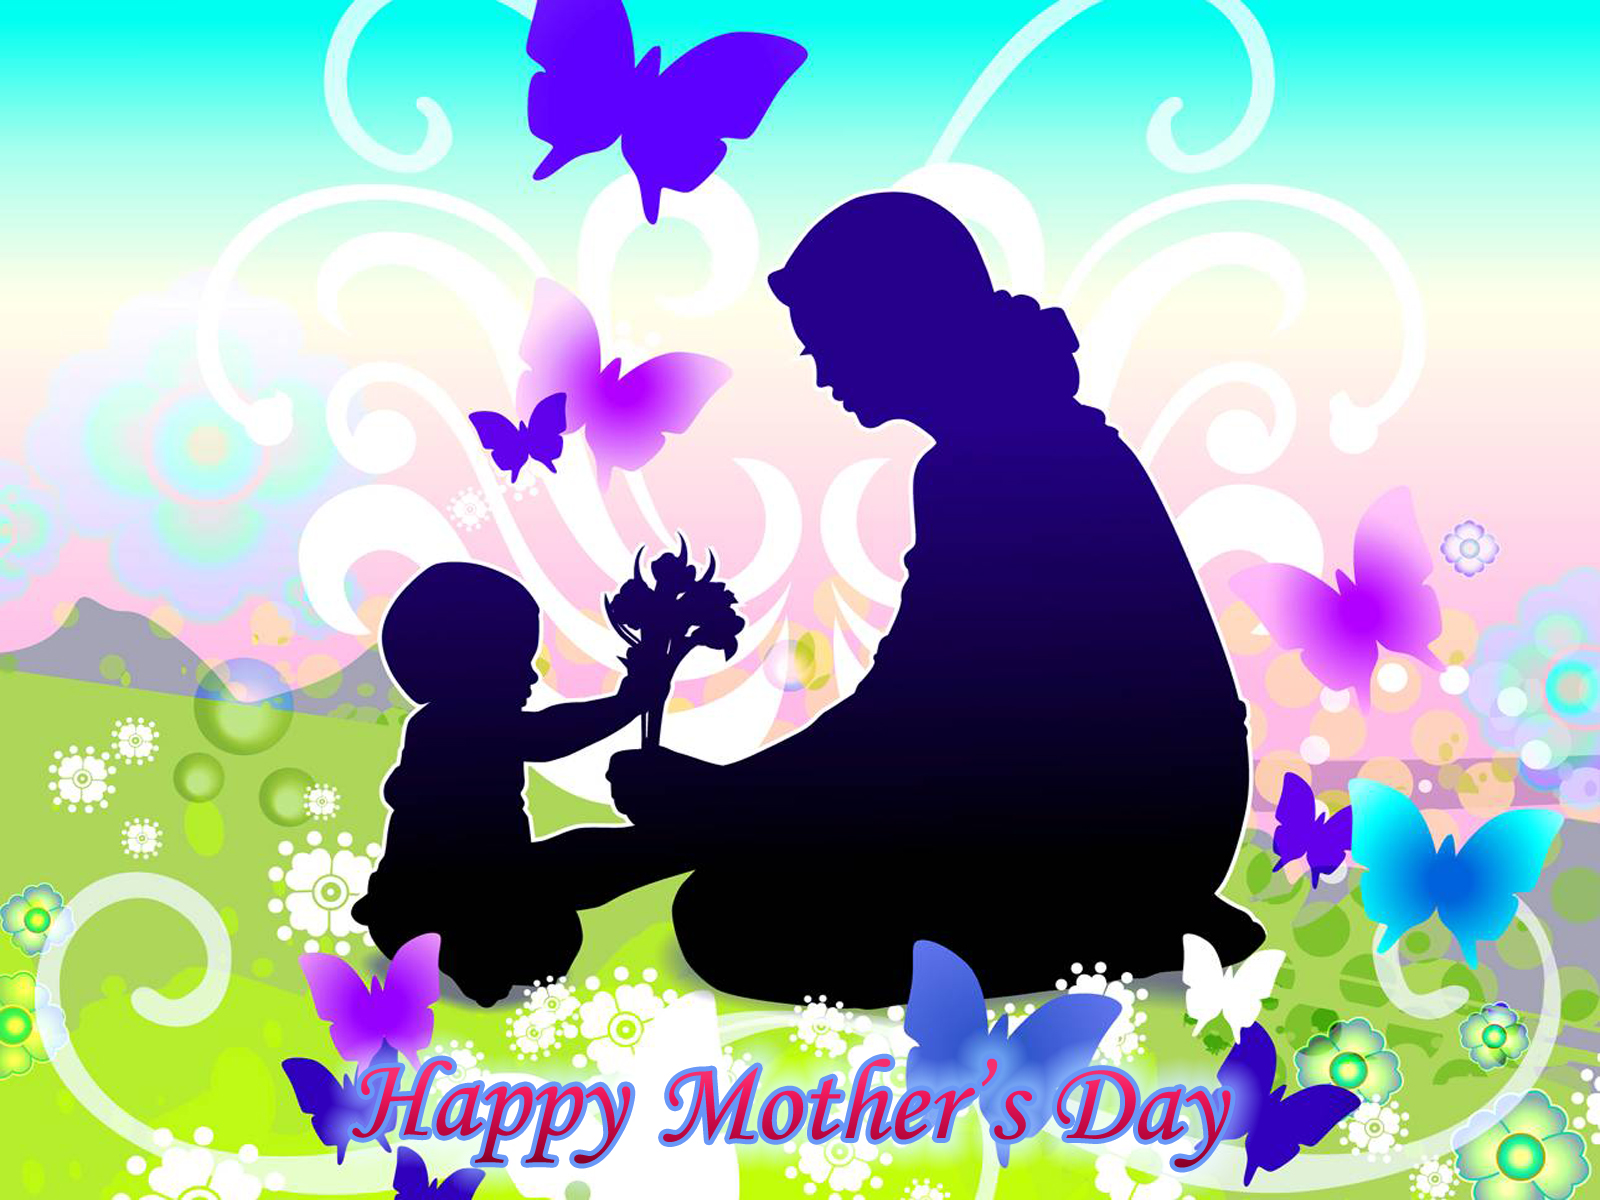 Happy Mothers Day Page 3 1678597 Pavitra Rishta Forum 1600x1200